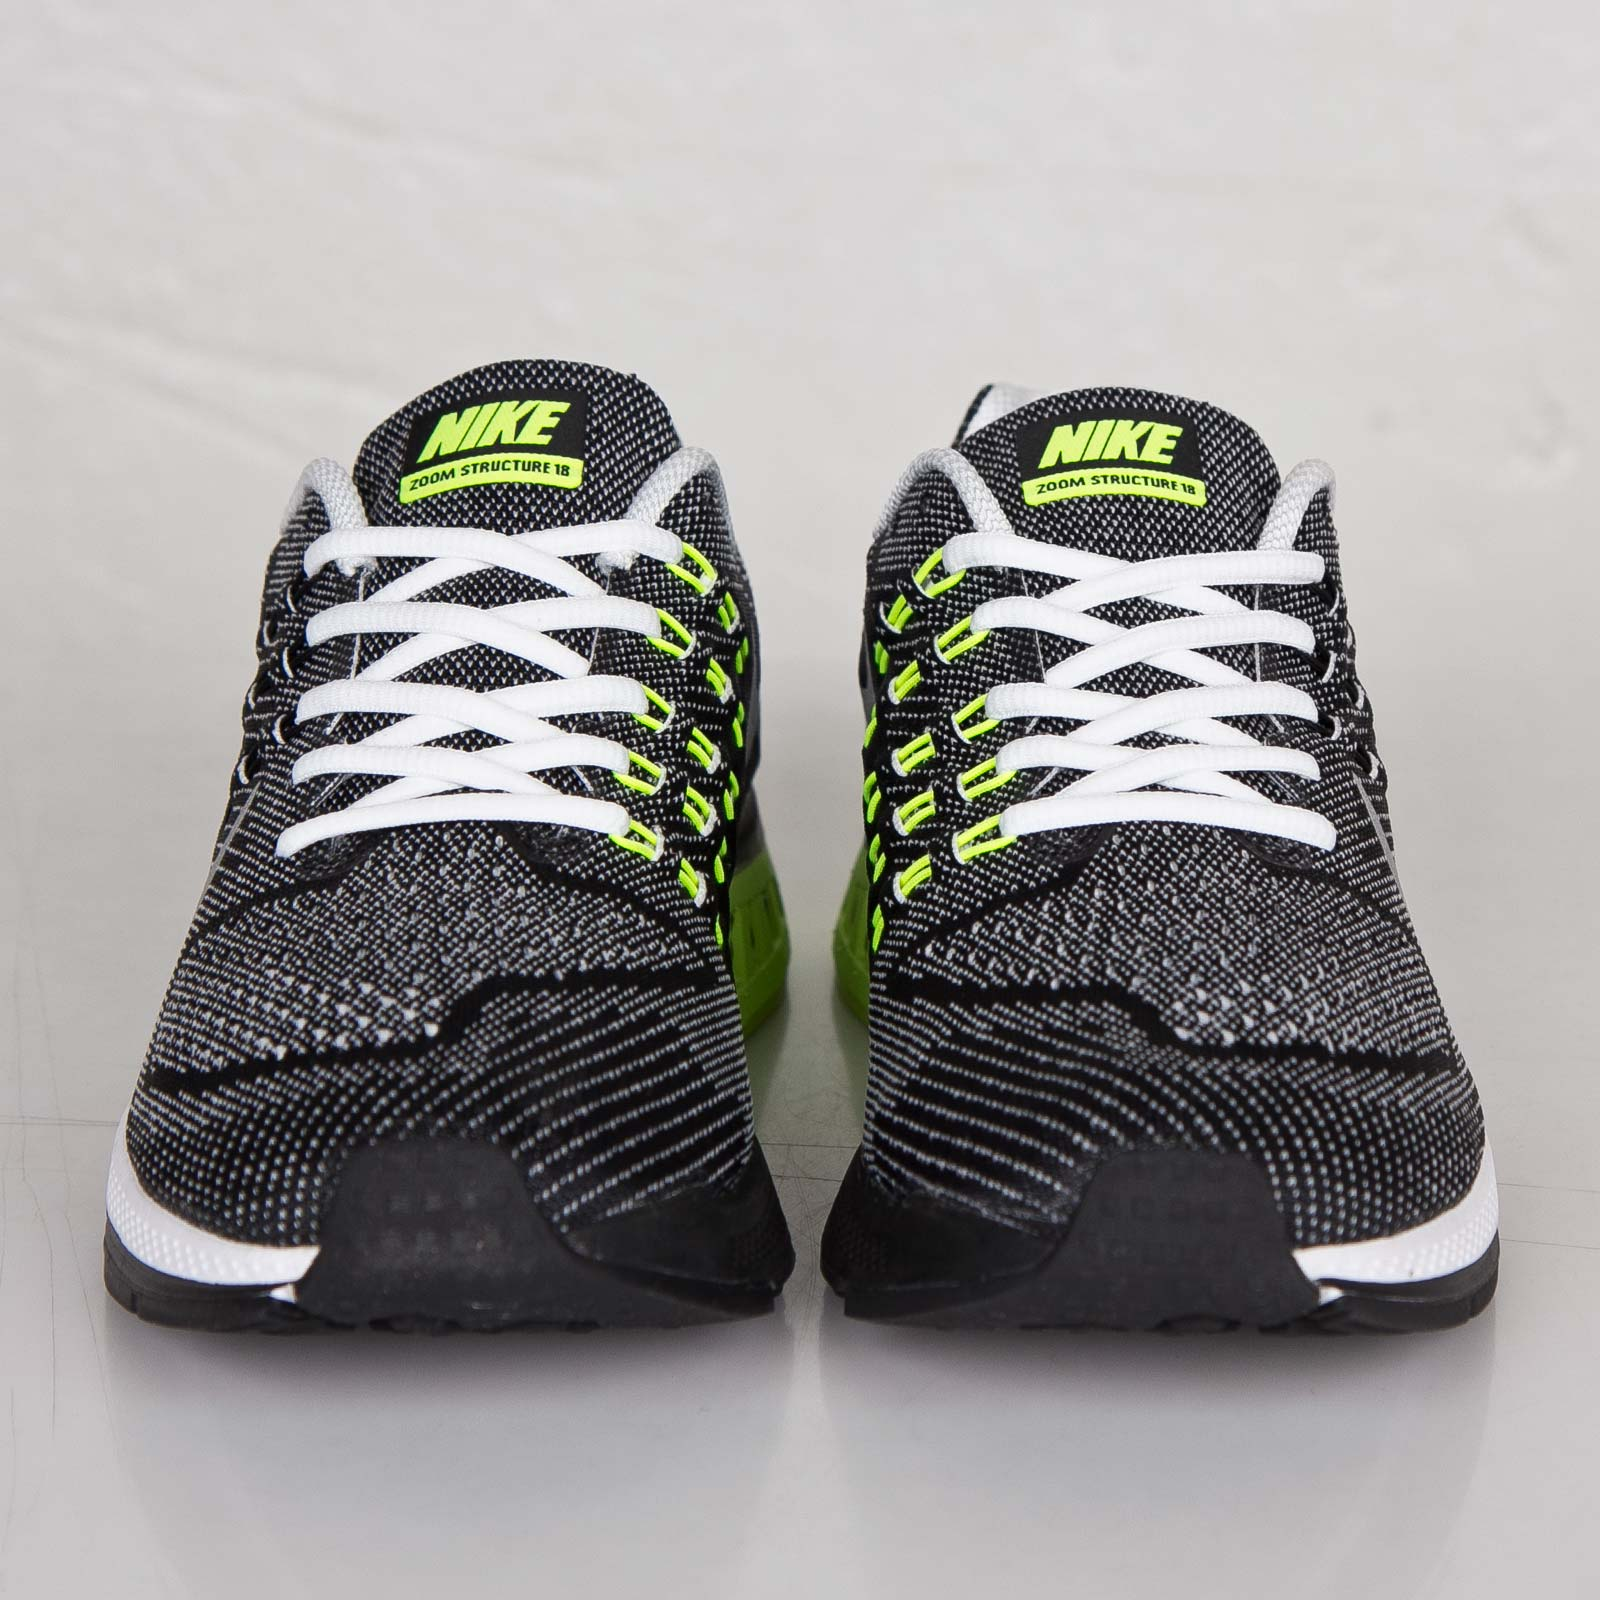 check out 1eed4 8edf2 Nike Air Zoom Structure 18 - 683731-100 - Sneakersnstuff ...